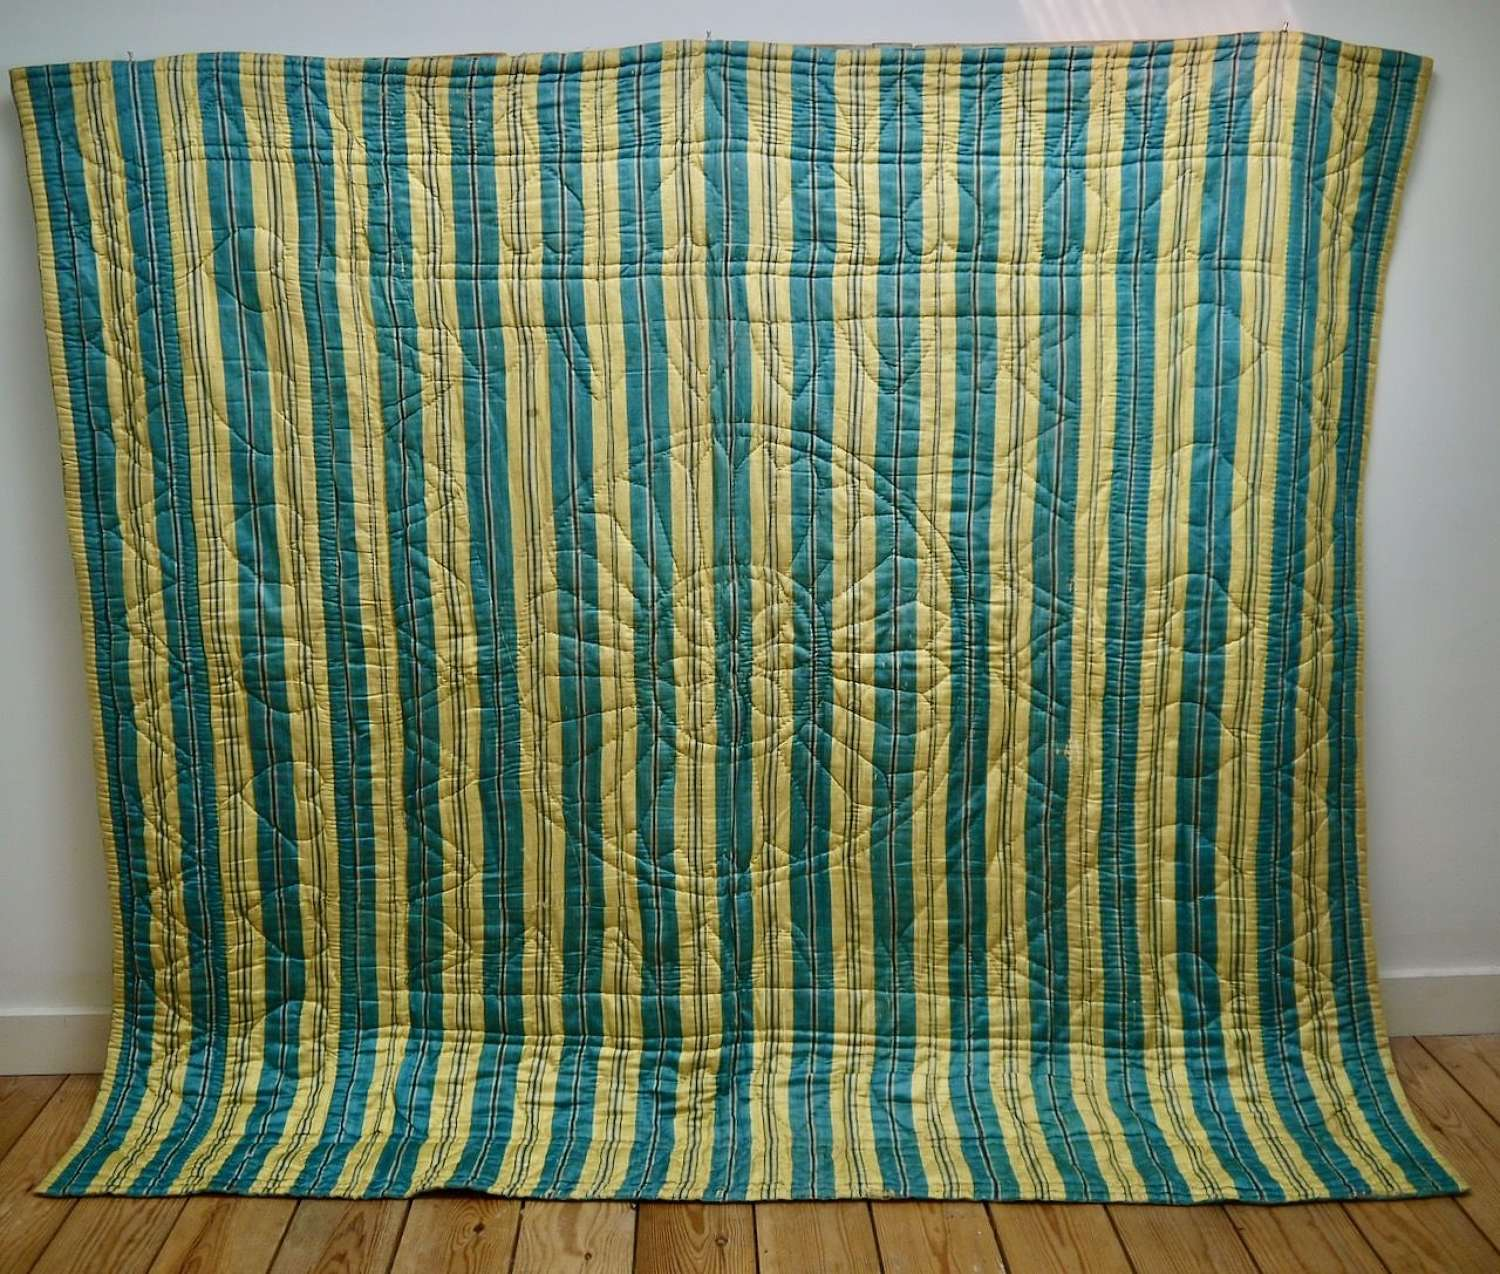 Blue & Yellow Striped Silk Quilt French 18th Century